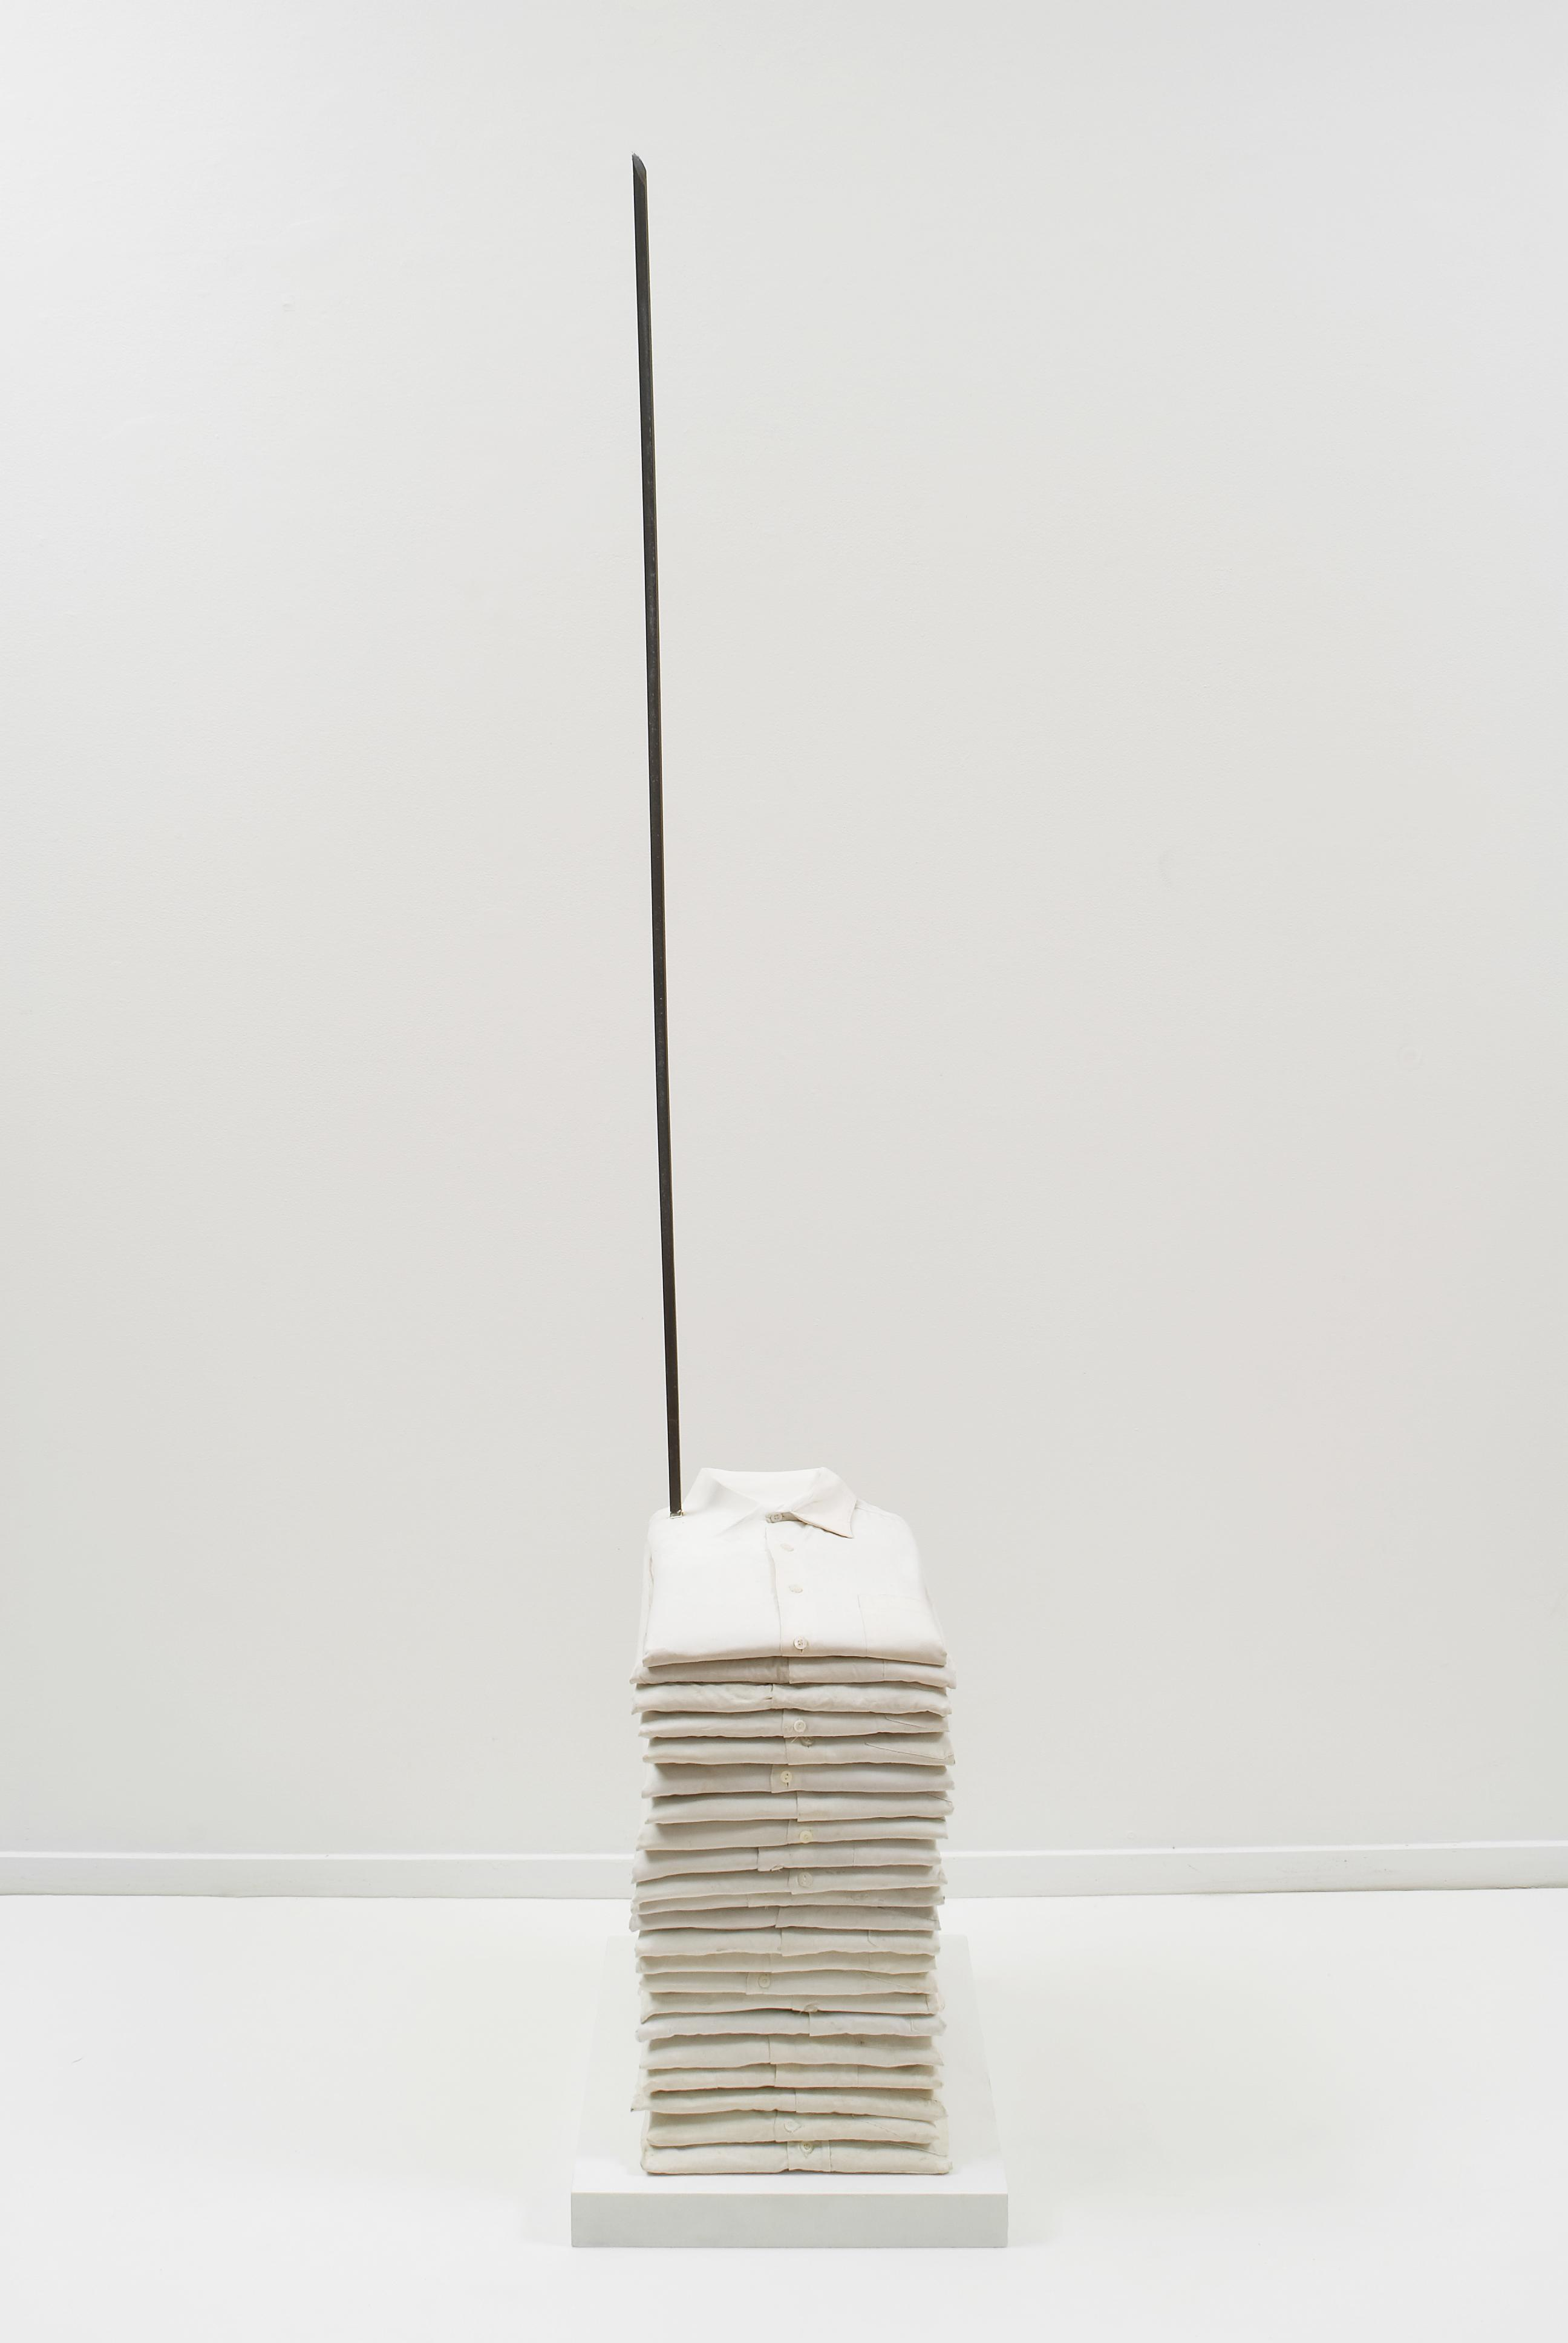 A stack of folded white polos is pierced by a vertical metal rod.